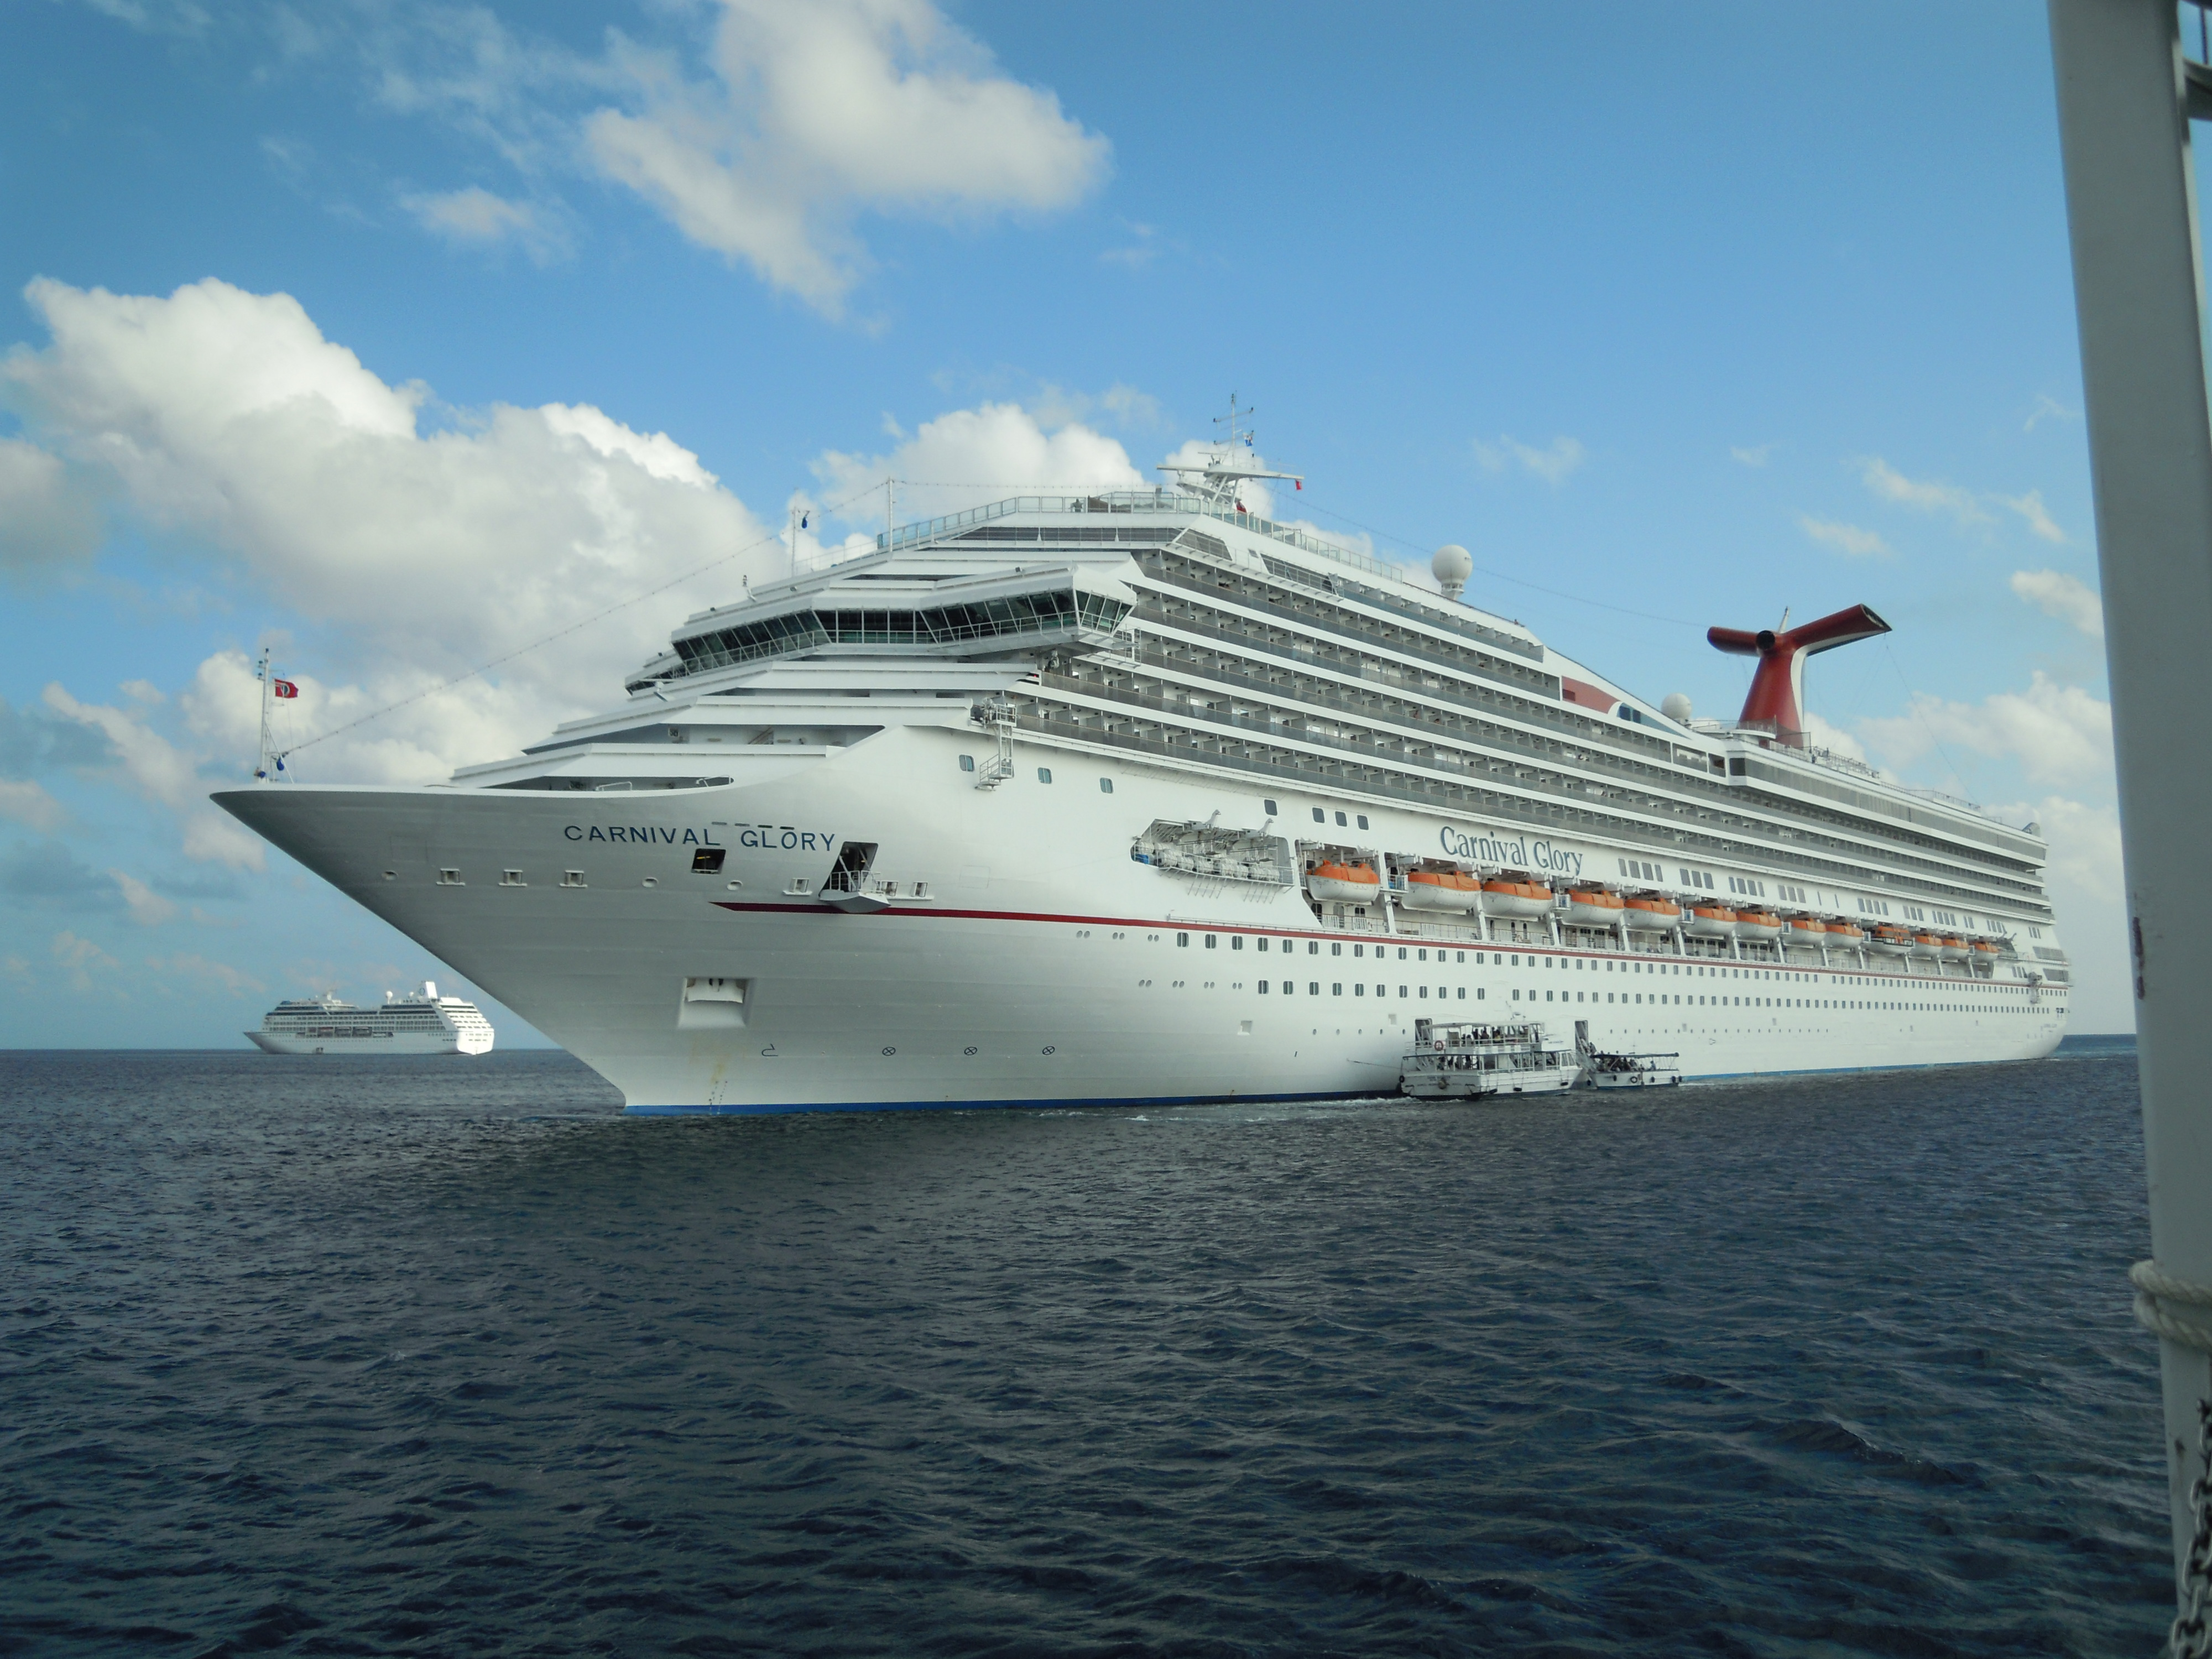 coast guard calls off search for missing carnival glory